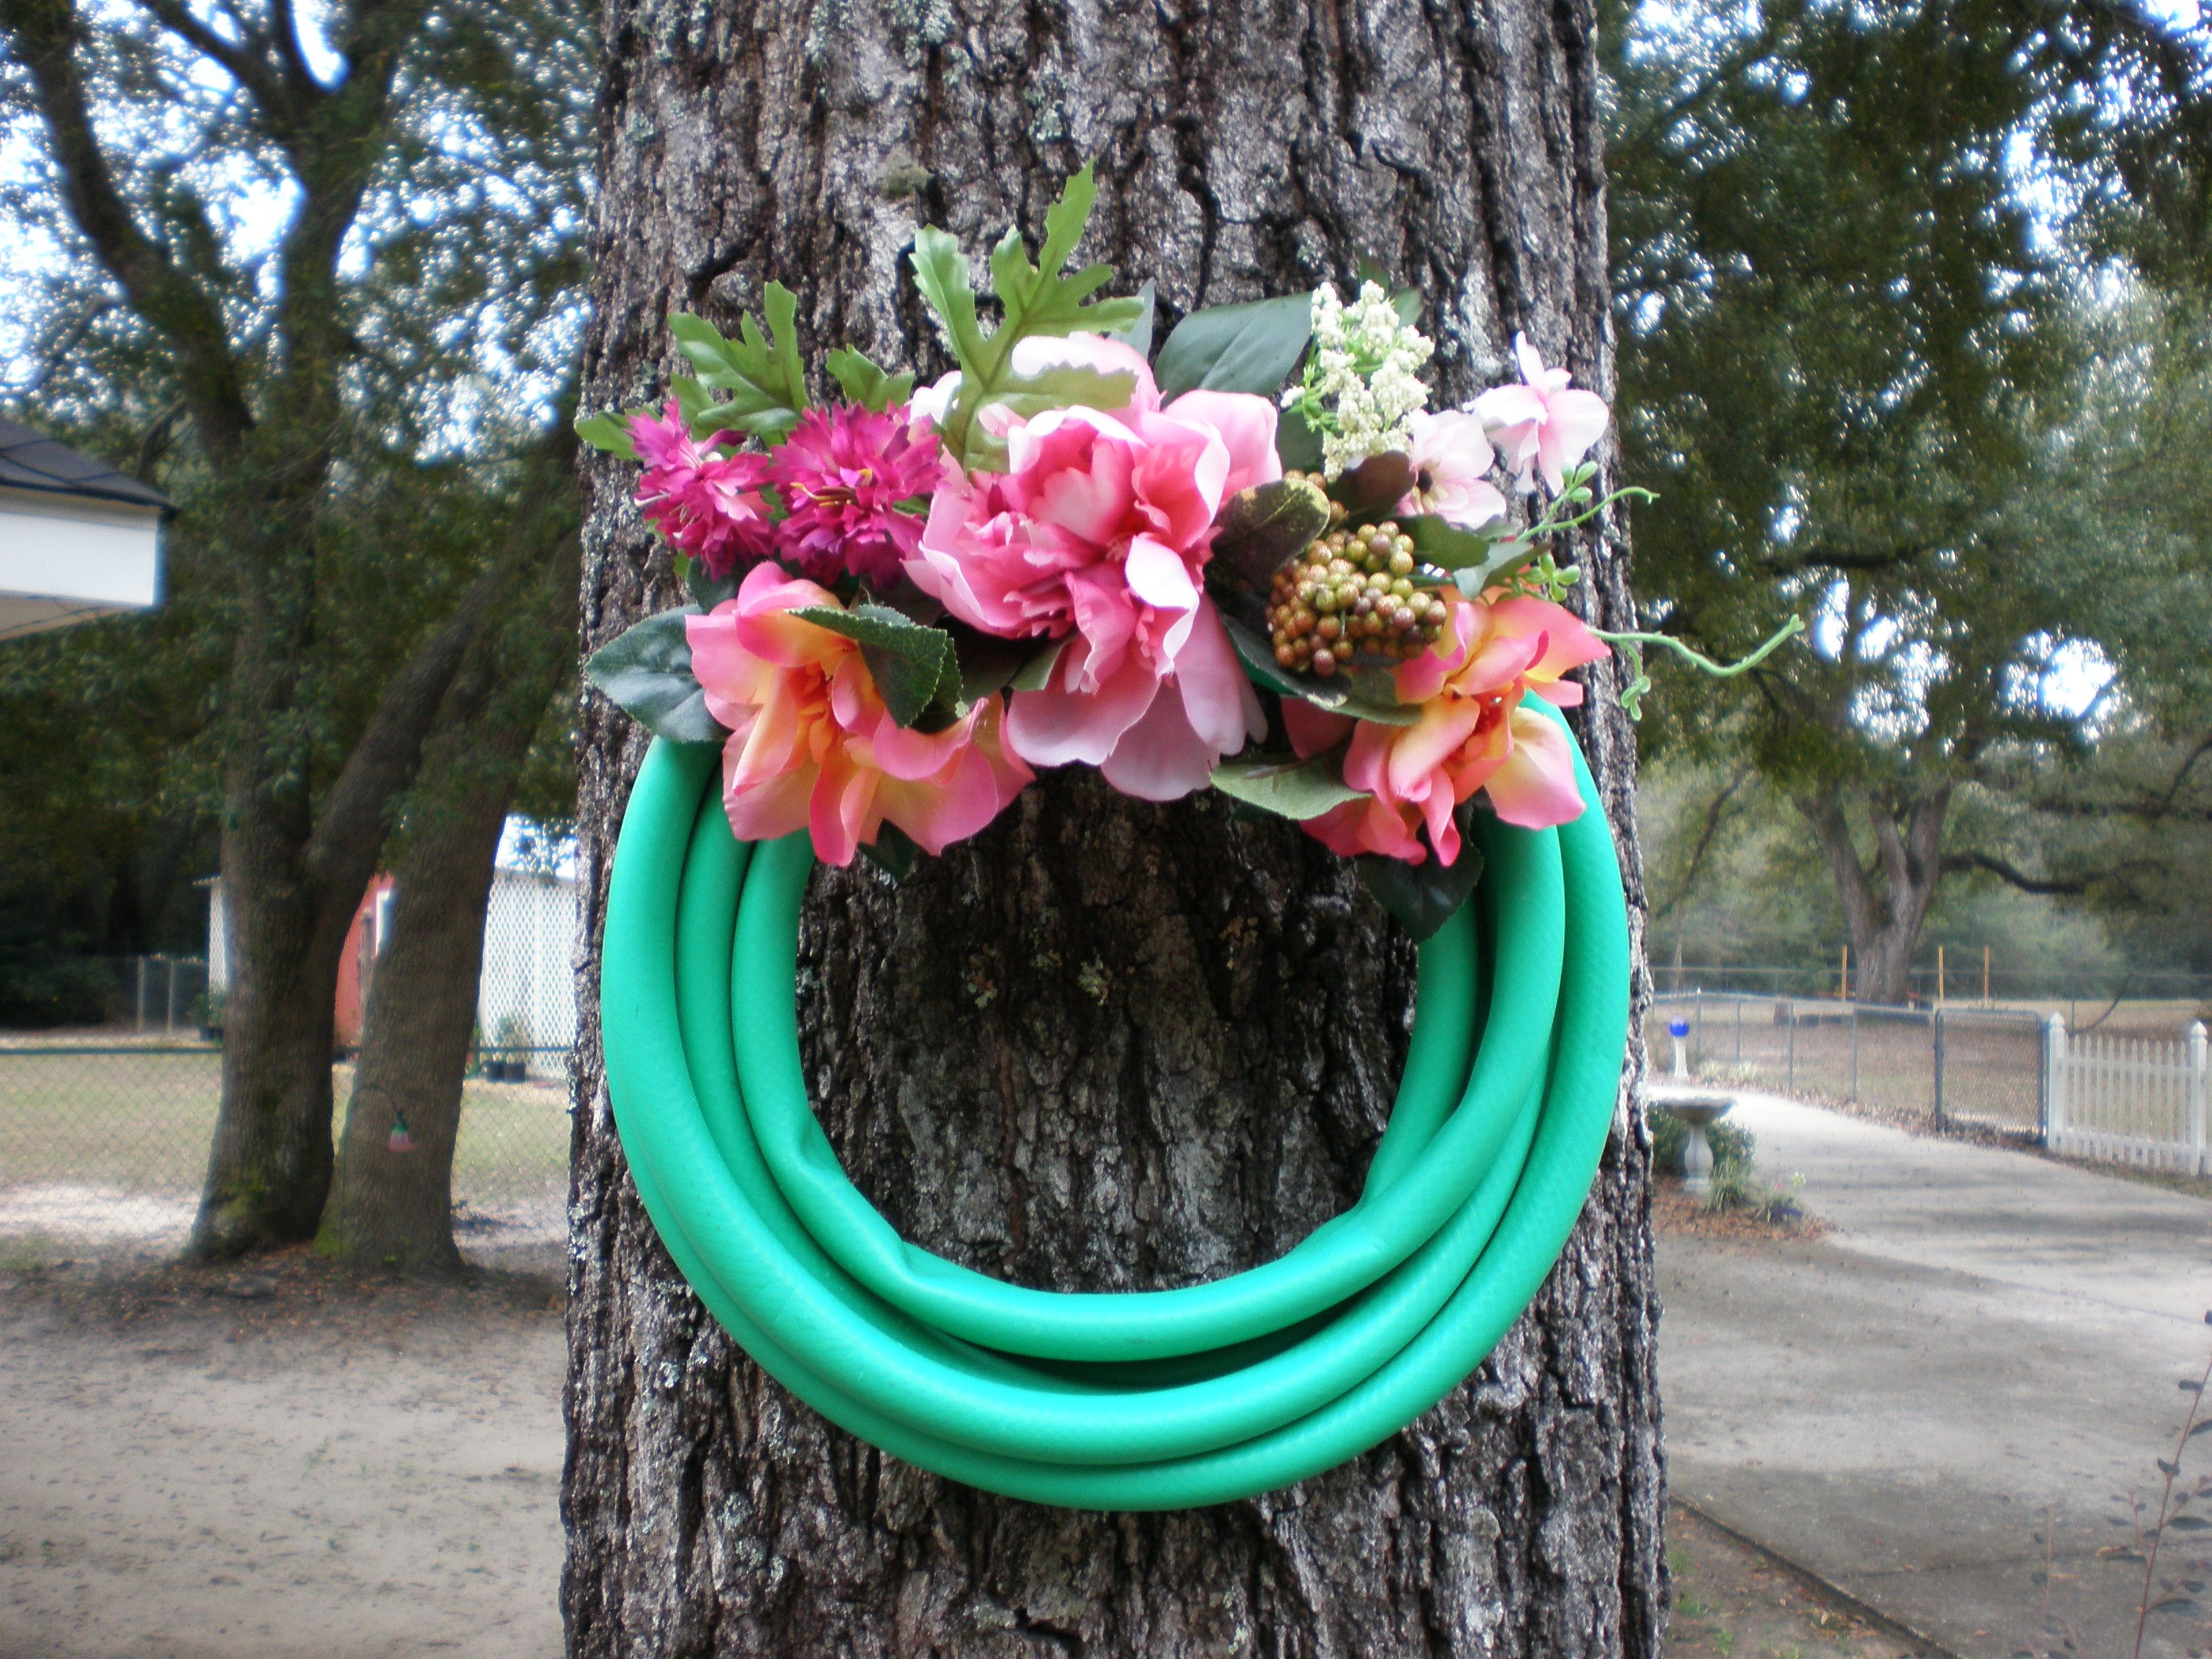 ALL NEW 2017 Garden Hose 50 Feet Expandable Hose With All